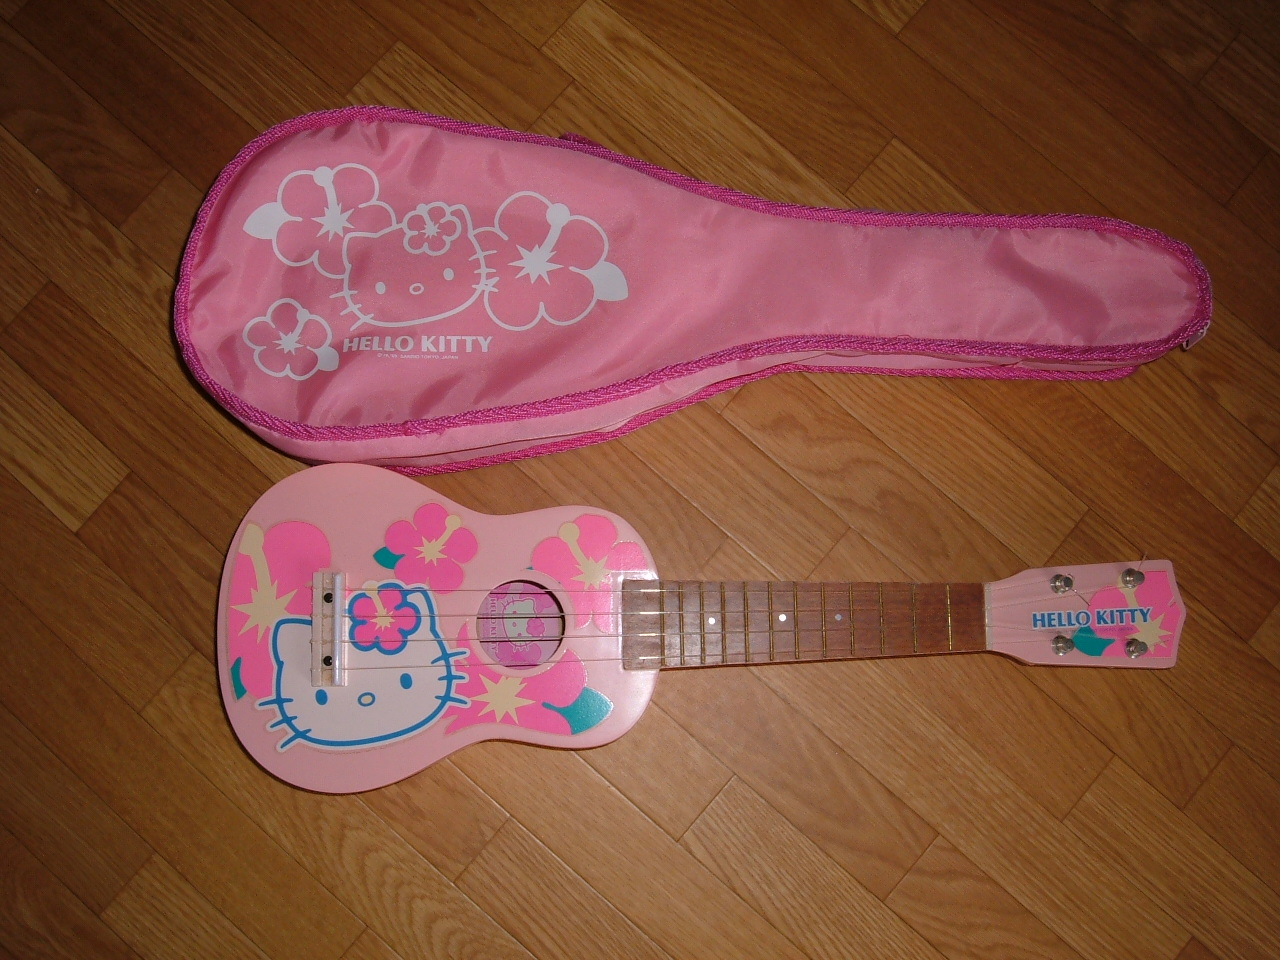 Hello Kitty ukulele and bag